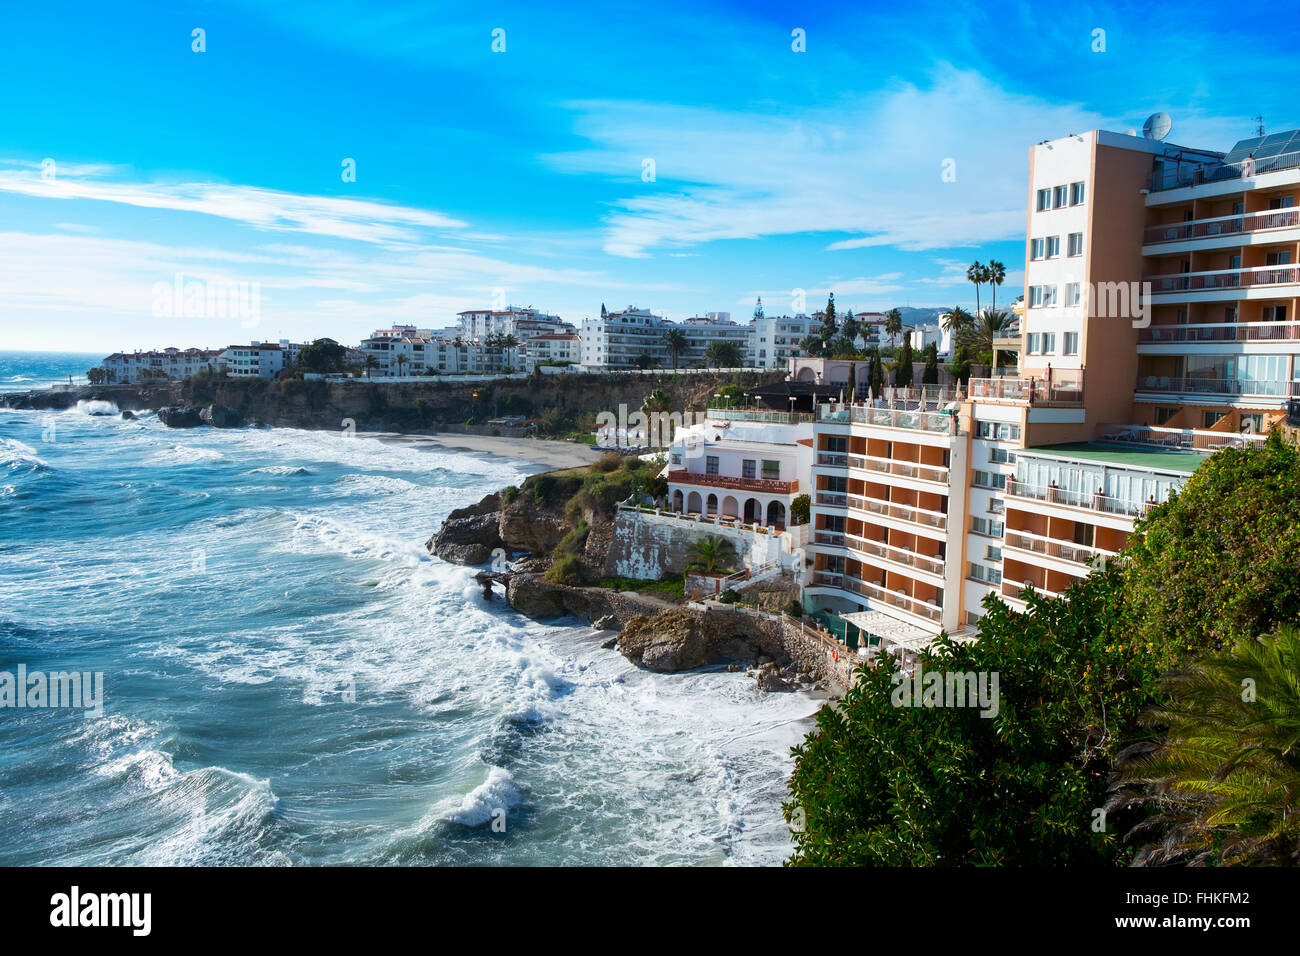 a view of the southern coast of Nerja, at the Mediterranean sea, in the Costa del Sol, Spain, with the El Salon - Stock Image